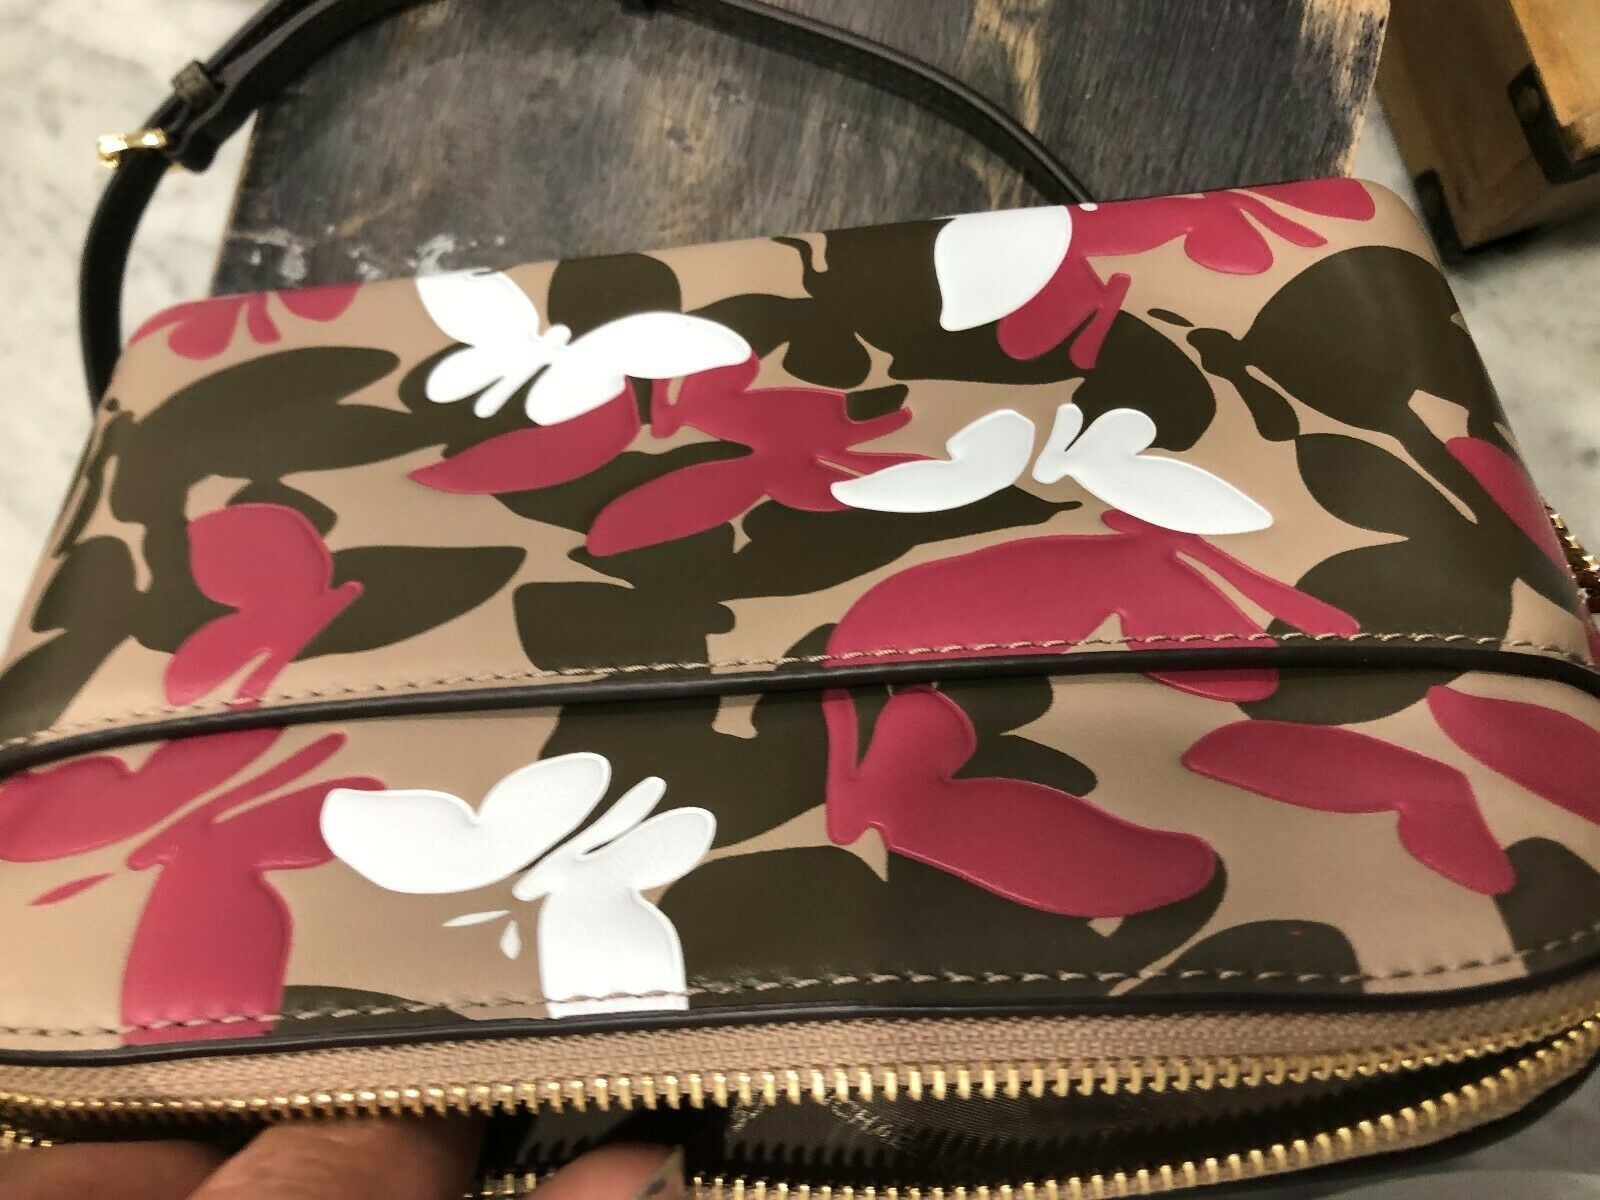 Michael Kors Cindy Large Dome Crossbody Bag in Butterfly Camo Embossed Leather